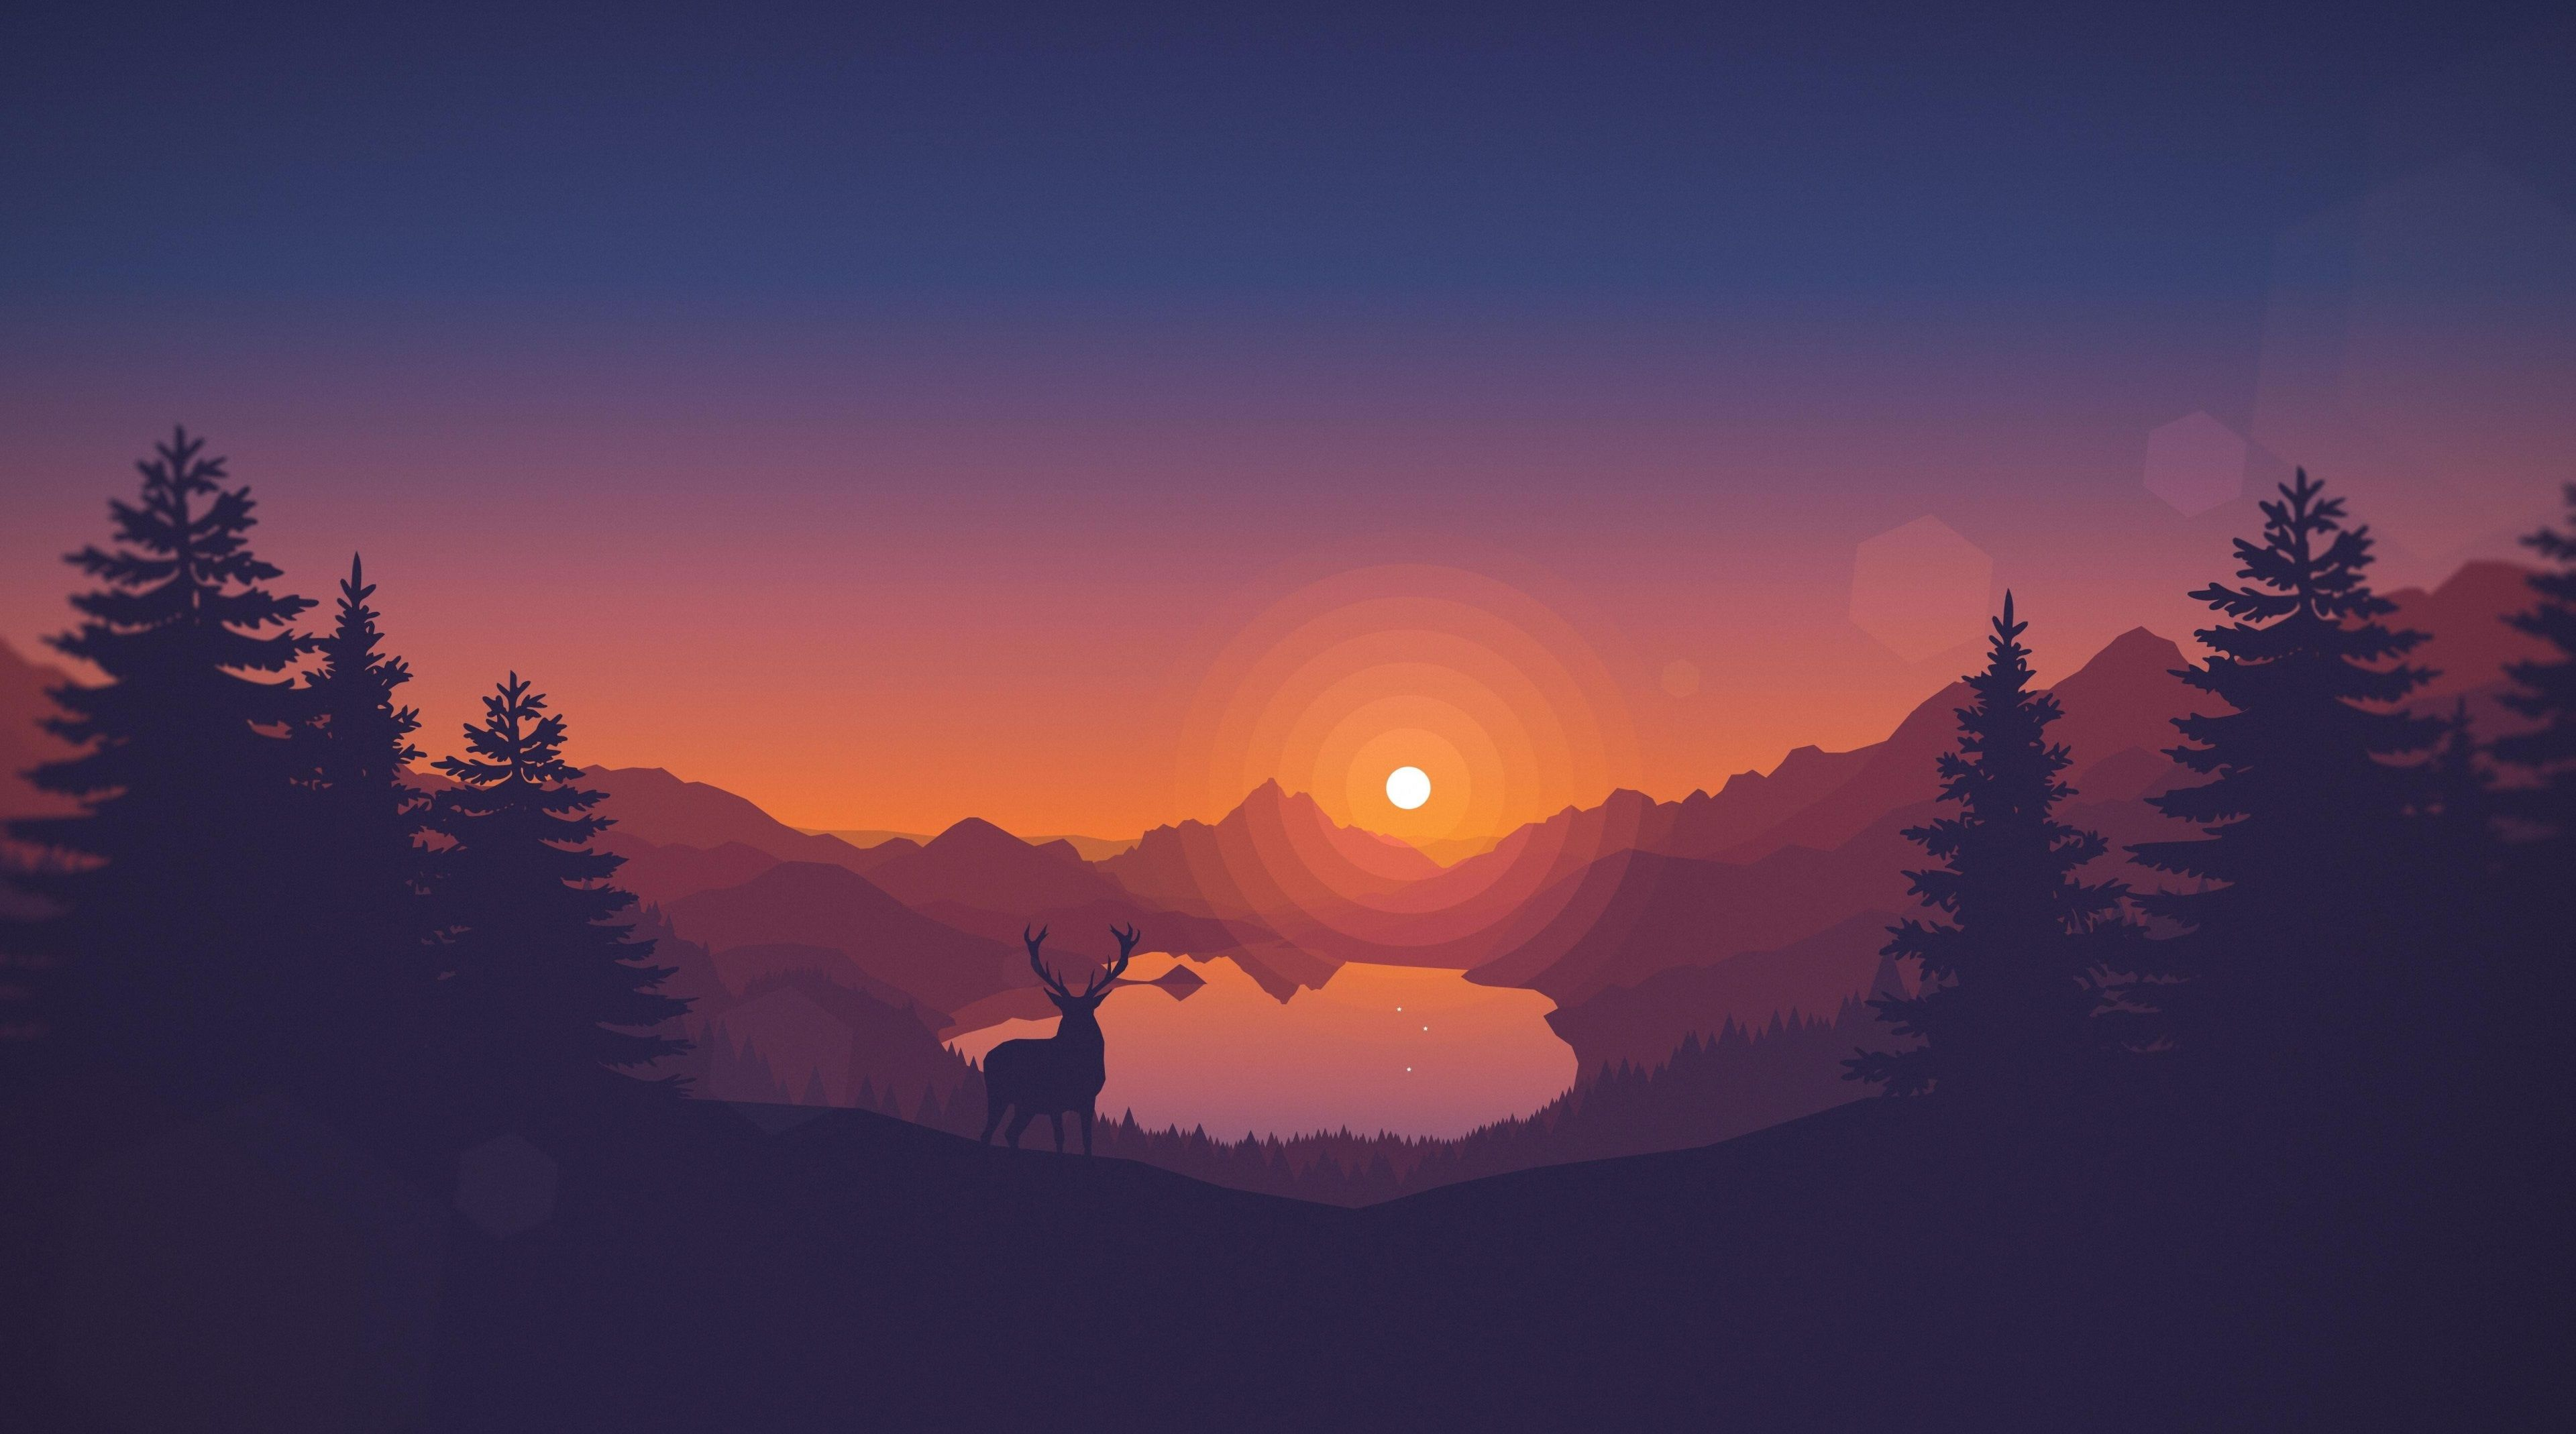 3840x2138 Firewatch 4k Desktop Wallpaper Cool Landscape Wallpaper Minimalist Wallpaper Minimal Wallpaper